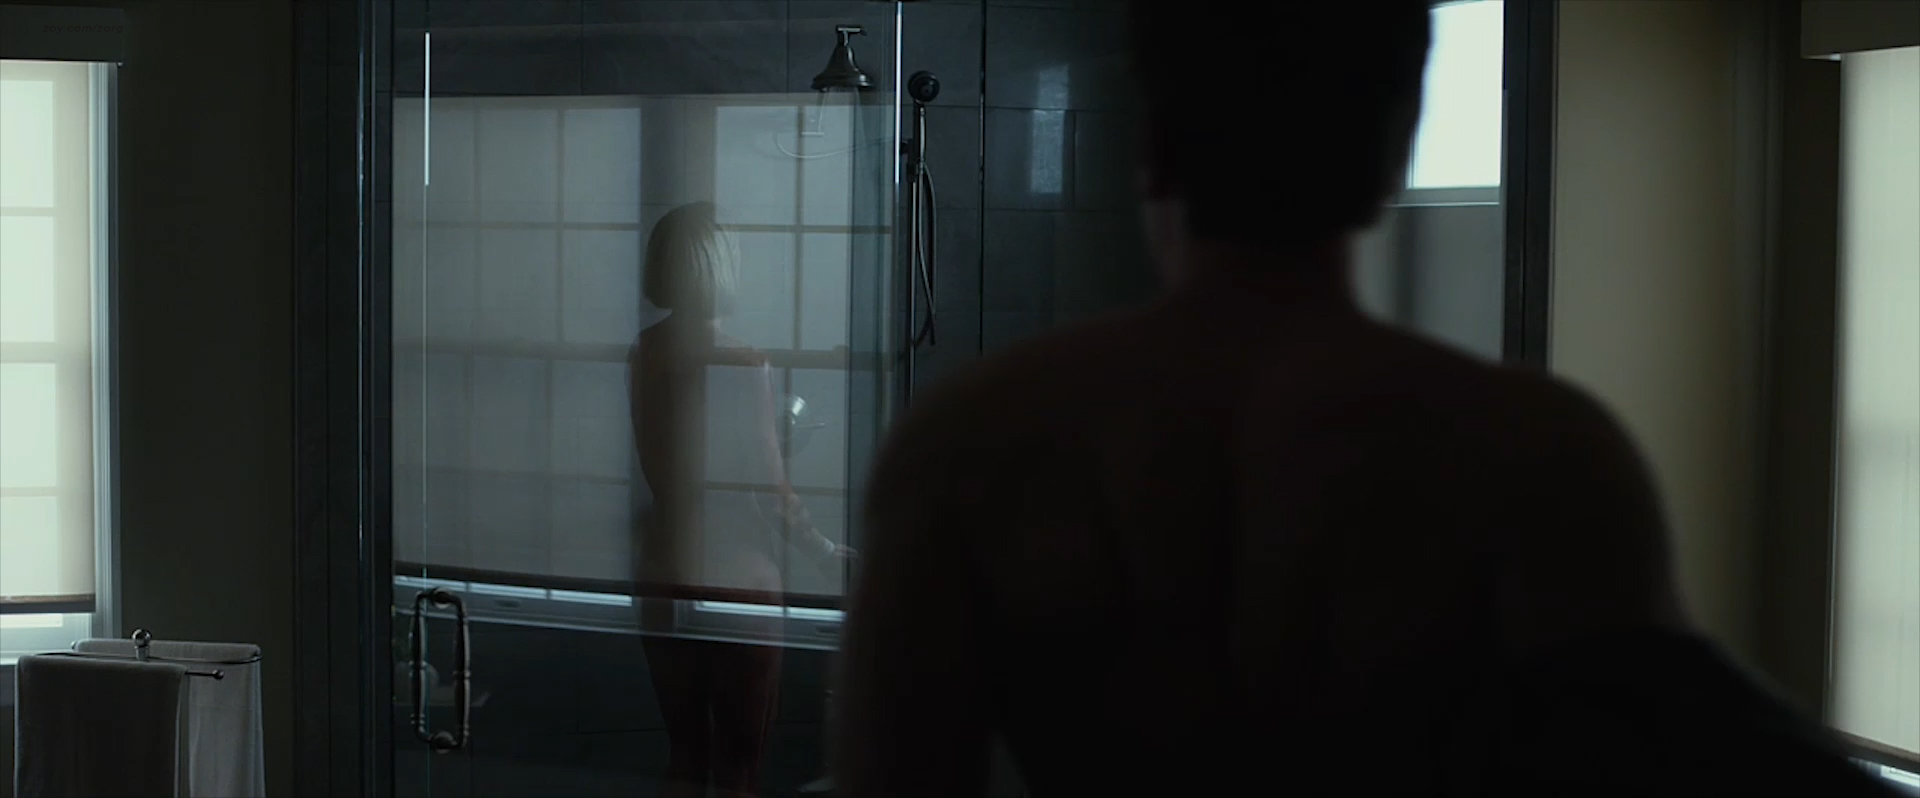 Rosamund Pike nude side boob and sex and Emily Ratajkowski nude topless and sex - Gone Girl (2014) WEB-DL hd1080p (2)